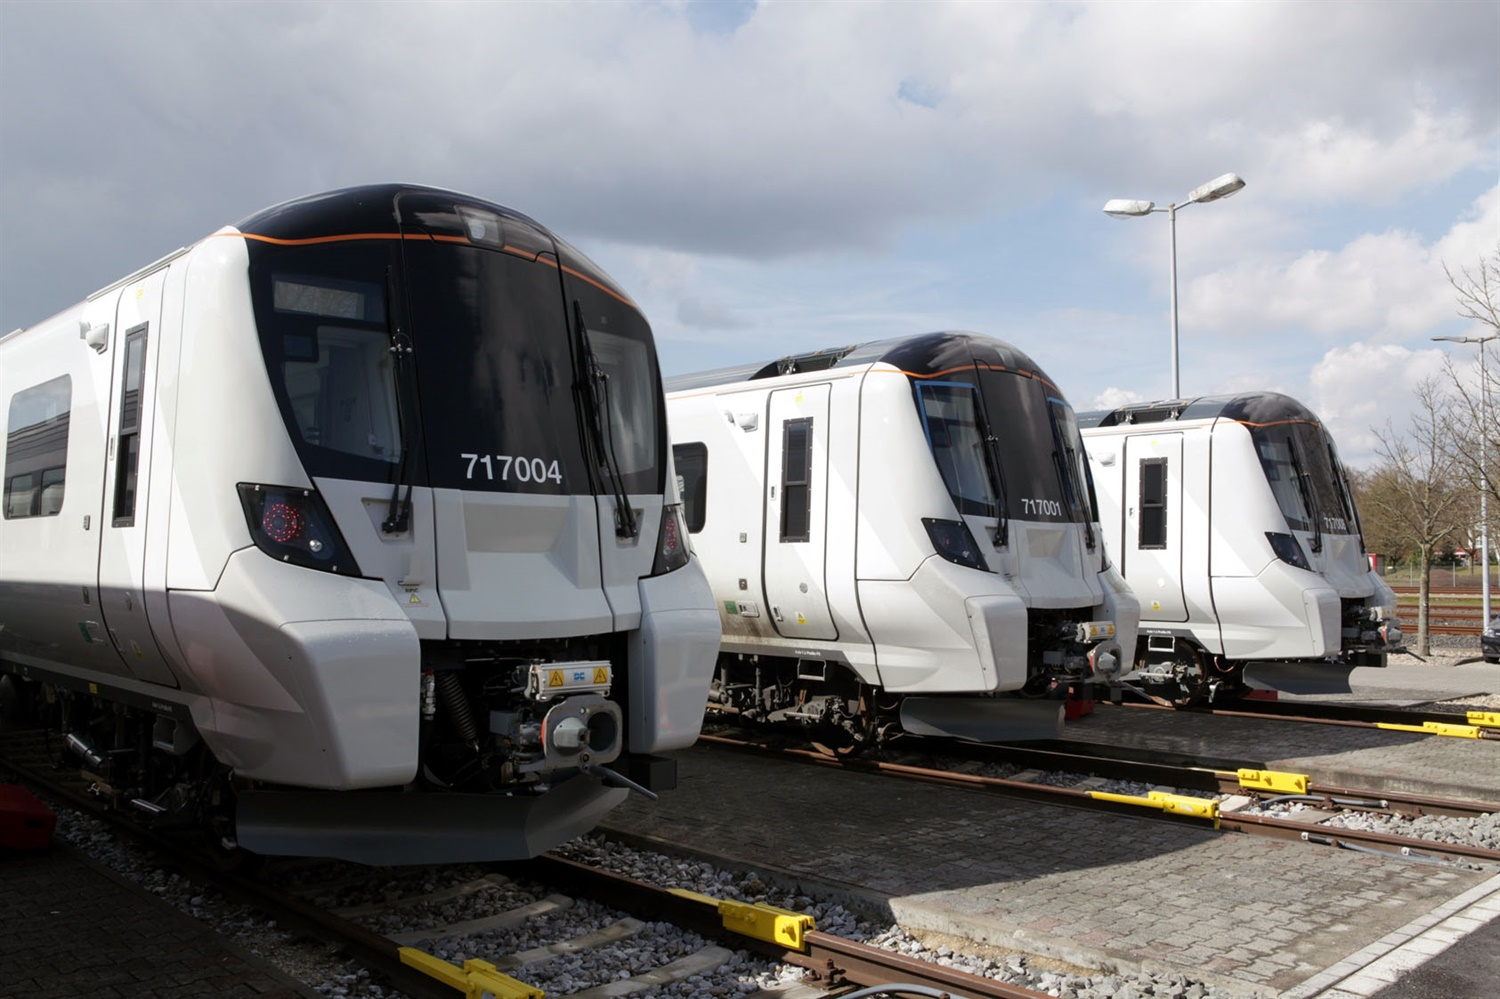 Brand-new £200m Class 717s undergo testing ahead of autumn roll-out